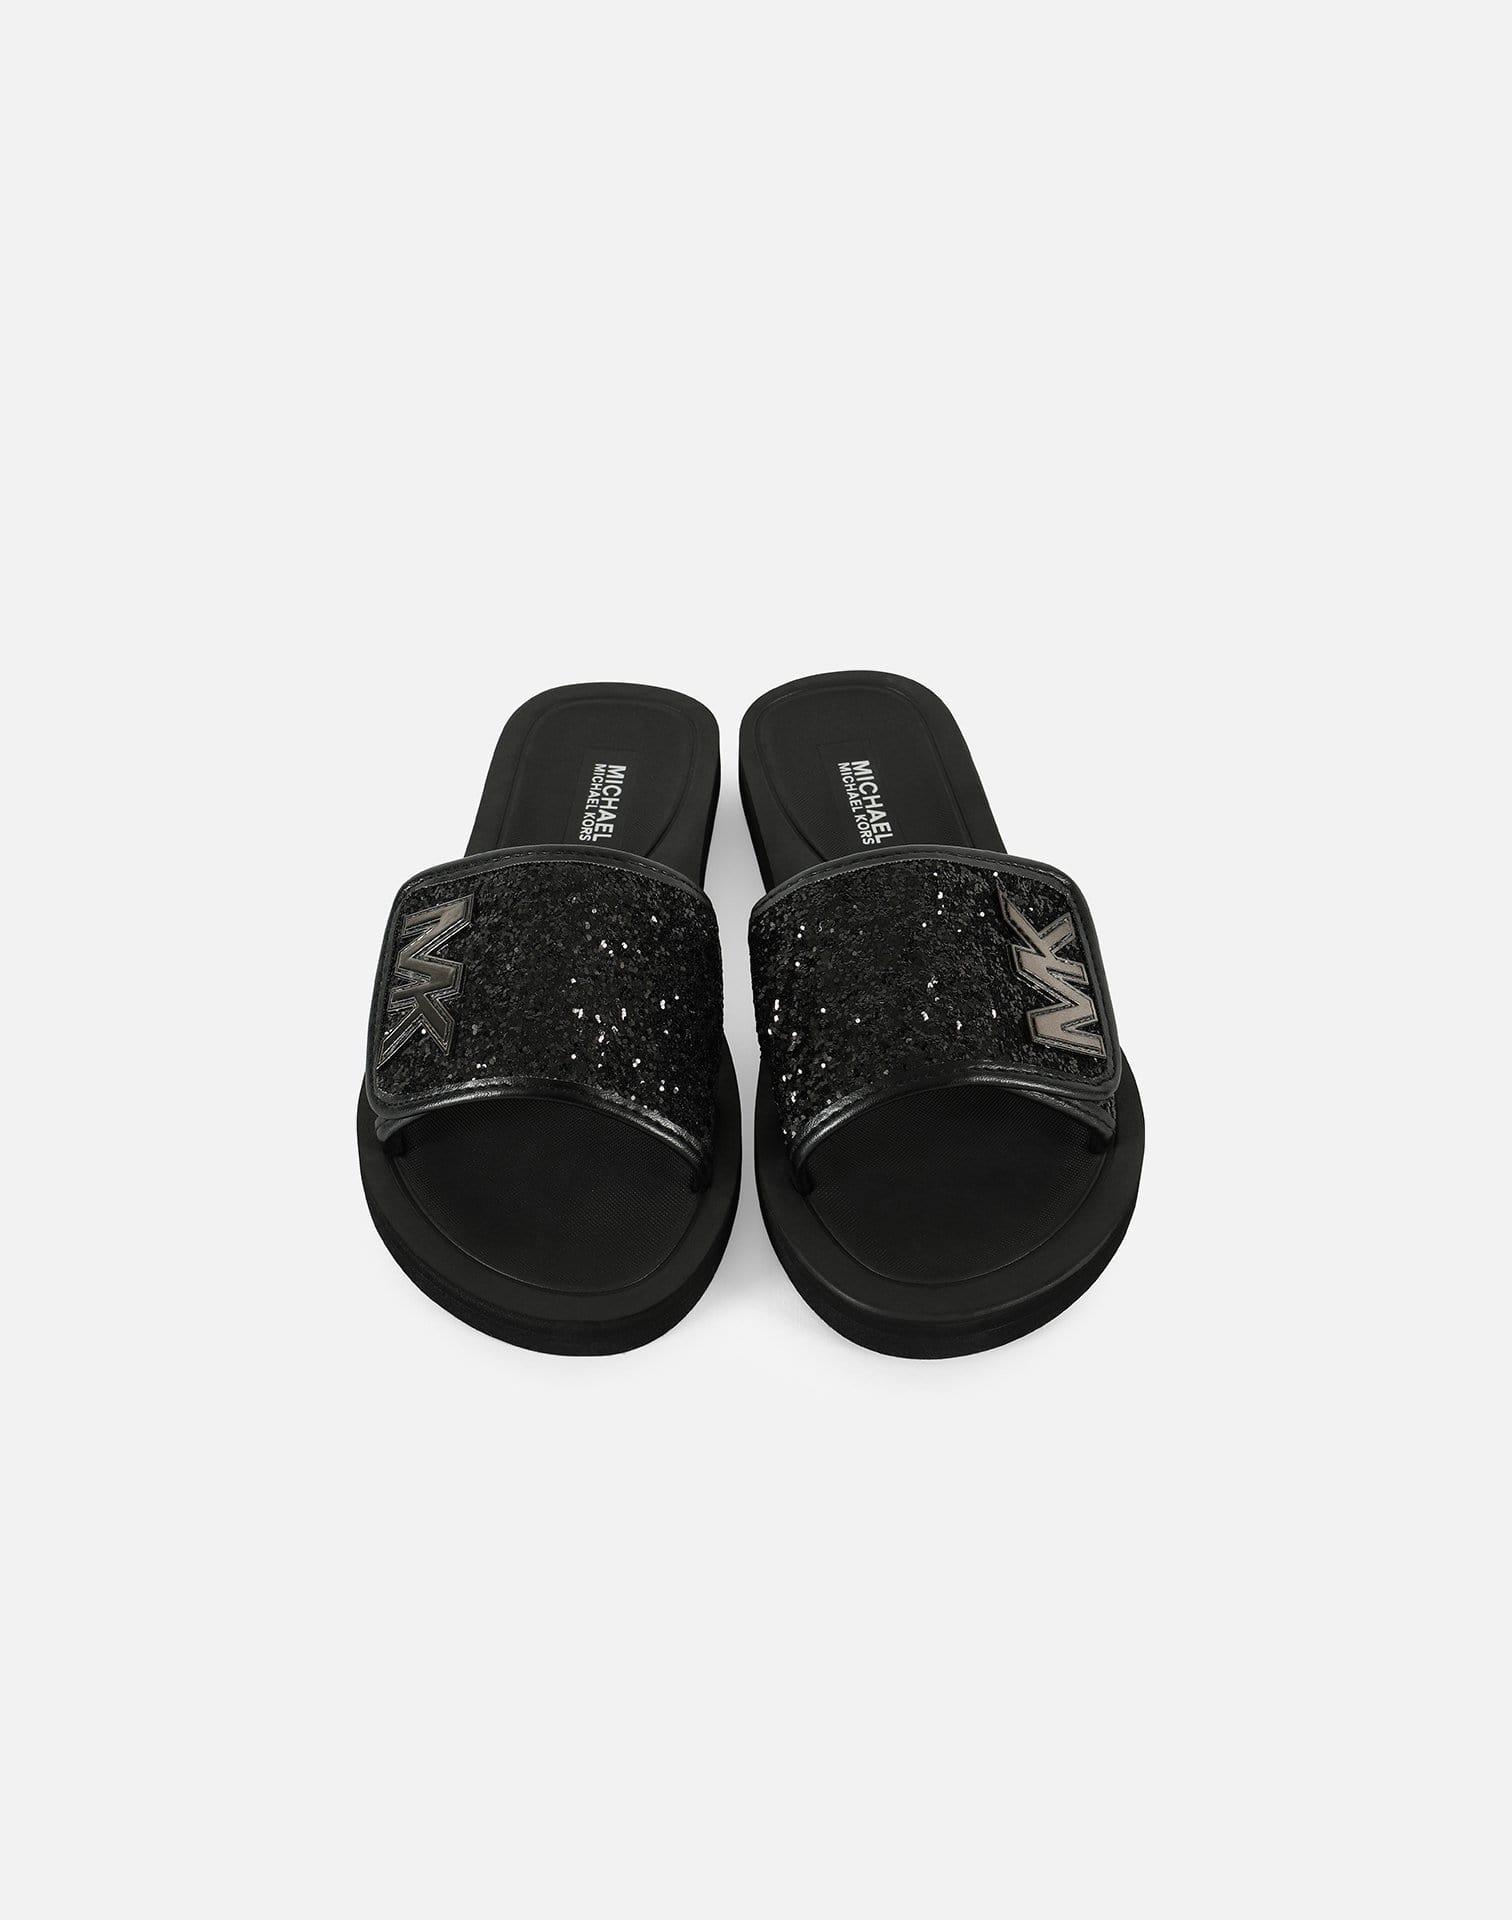 Michael Kors Girls' Eli Glow Glitter Slides Pre-School